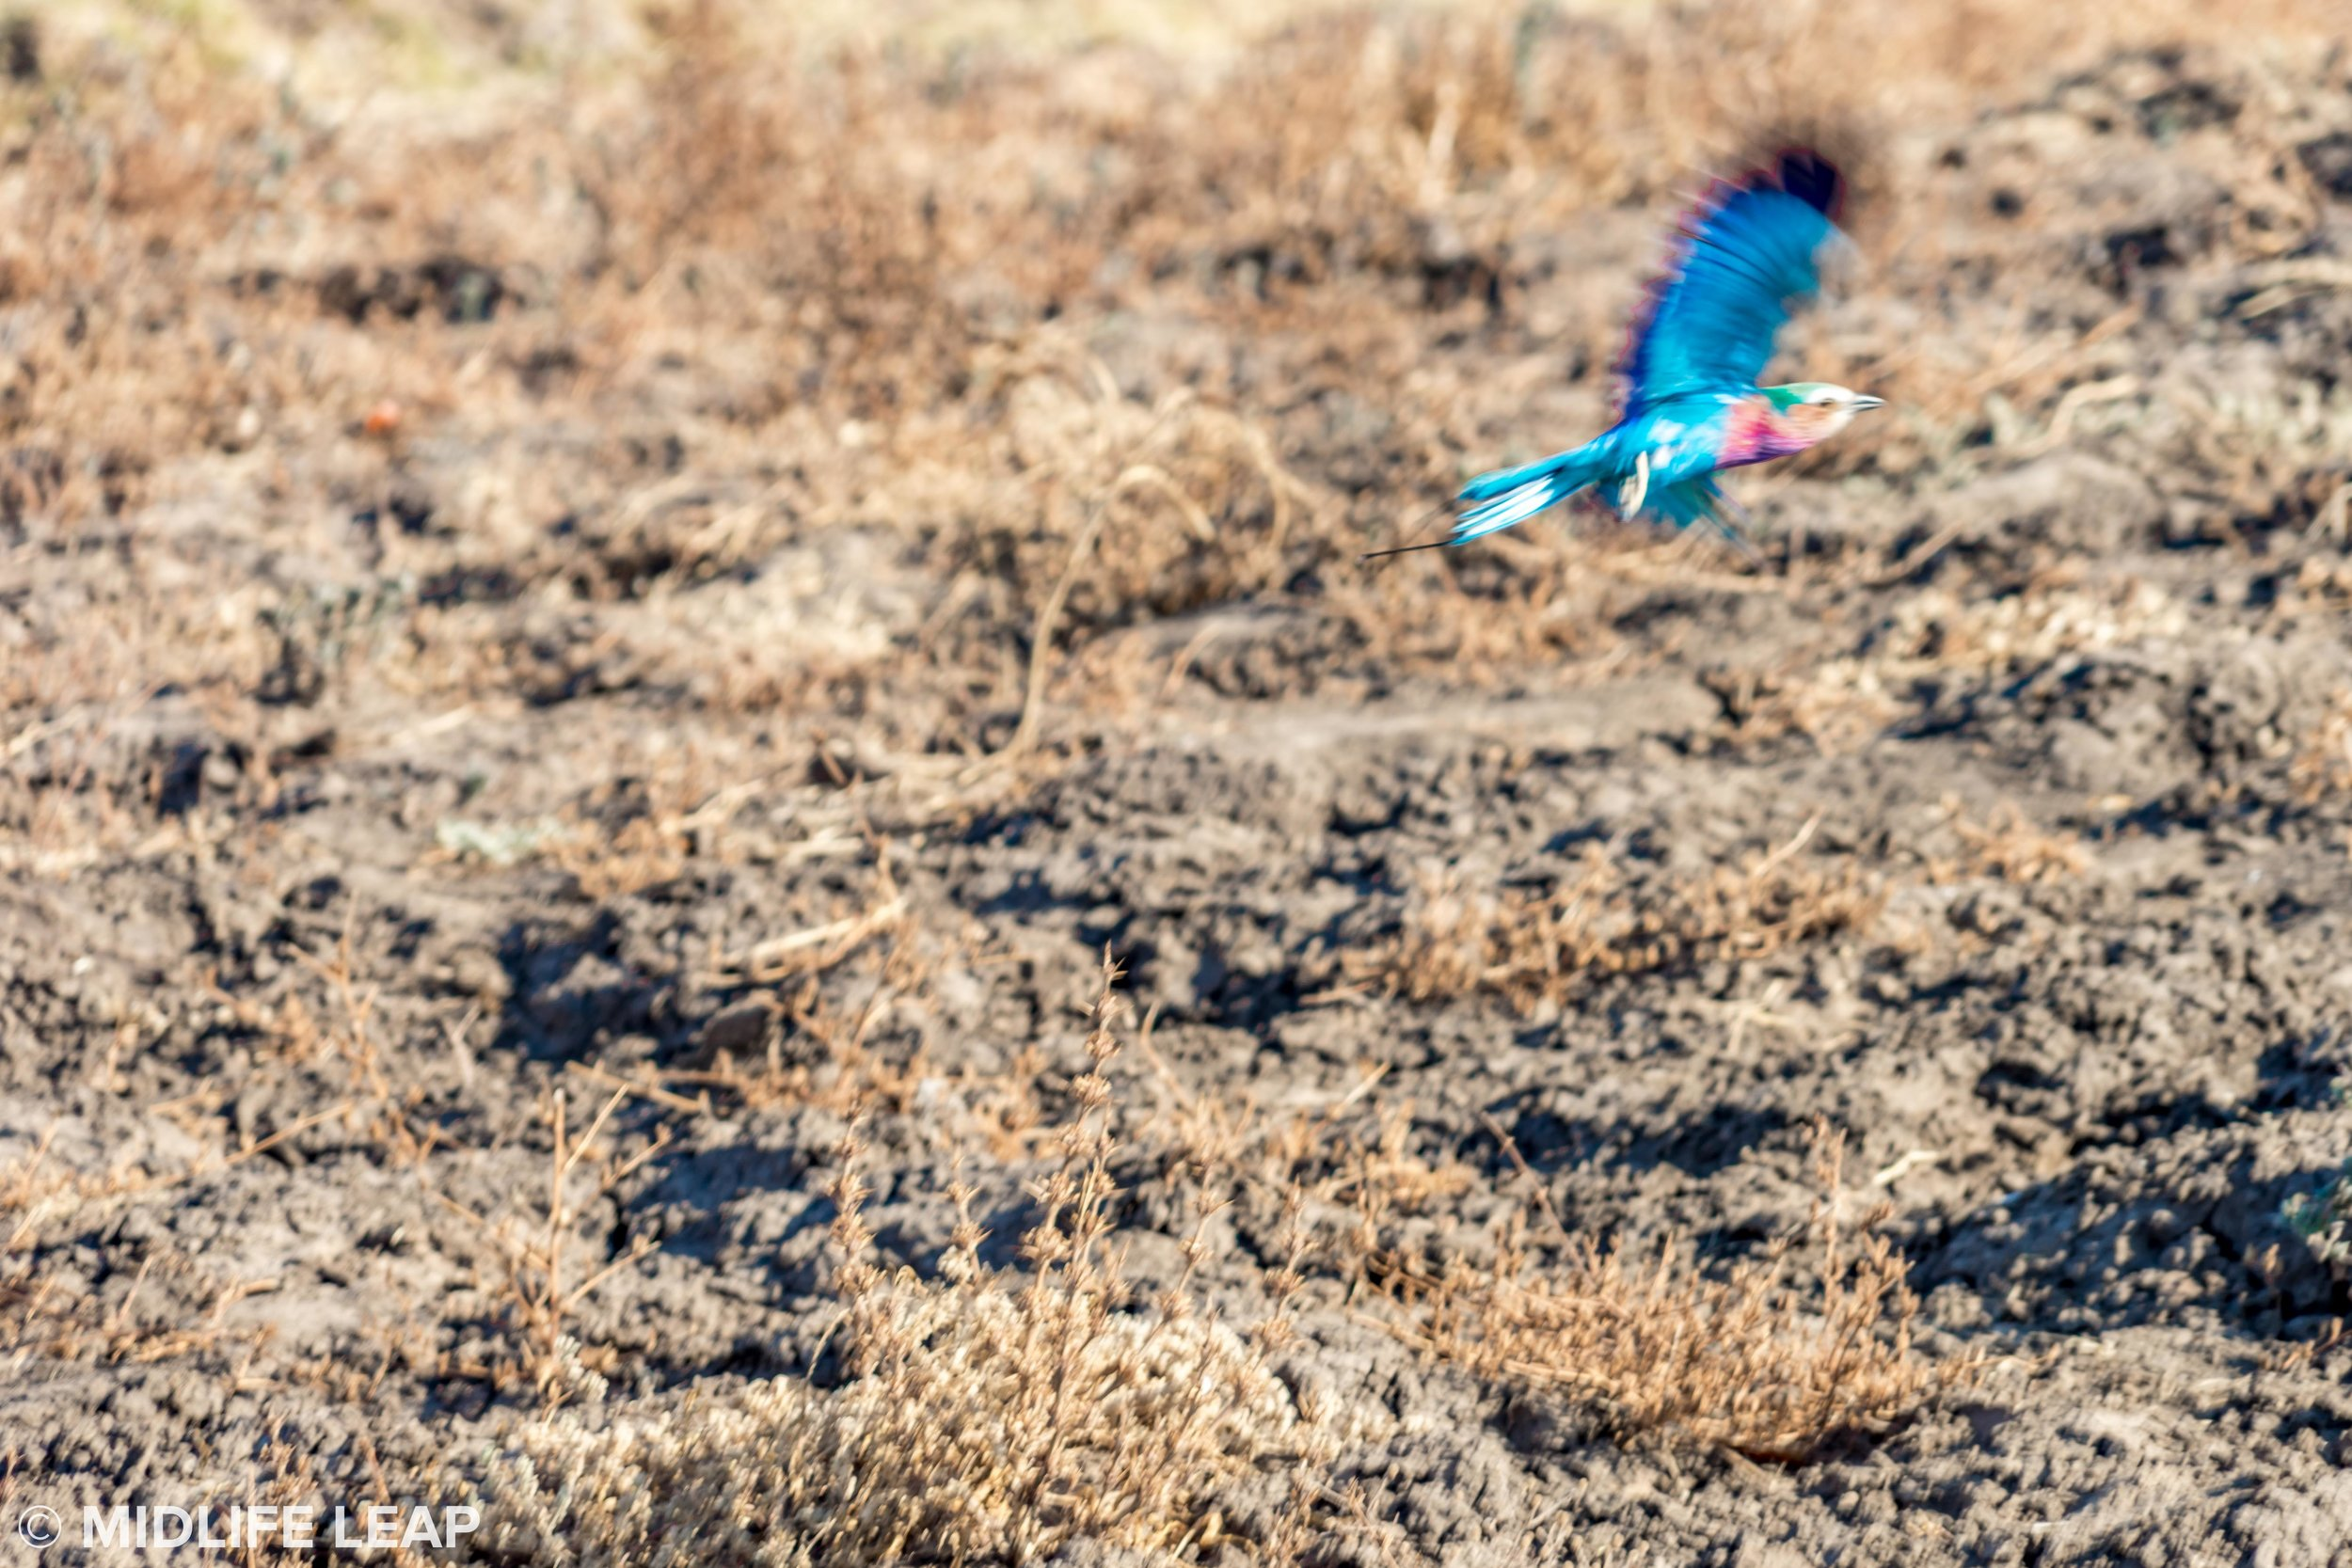 the lilac breasted roller in flight